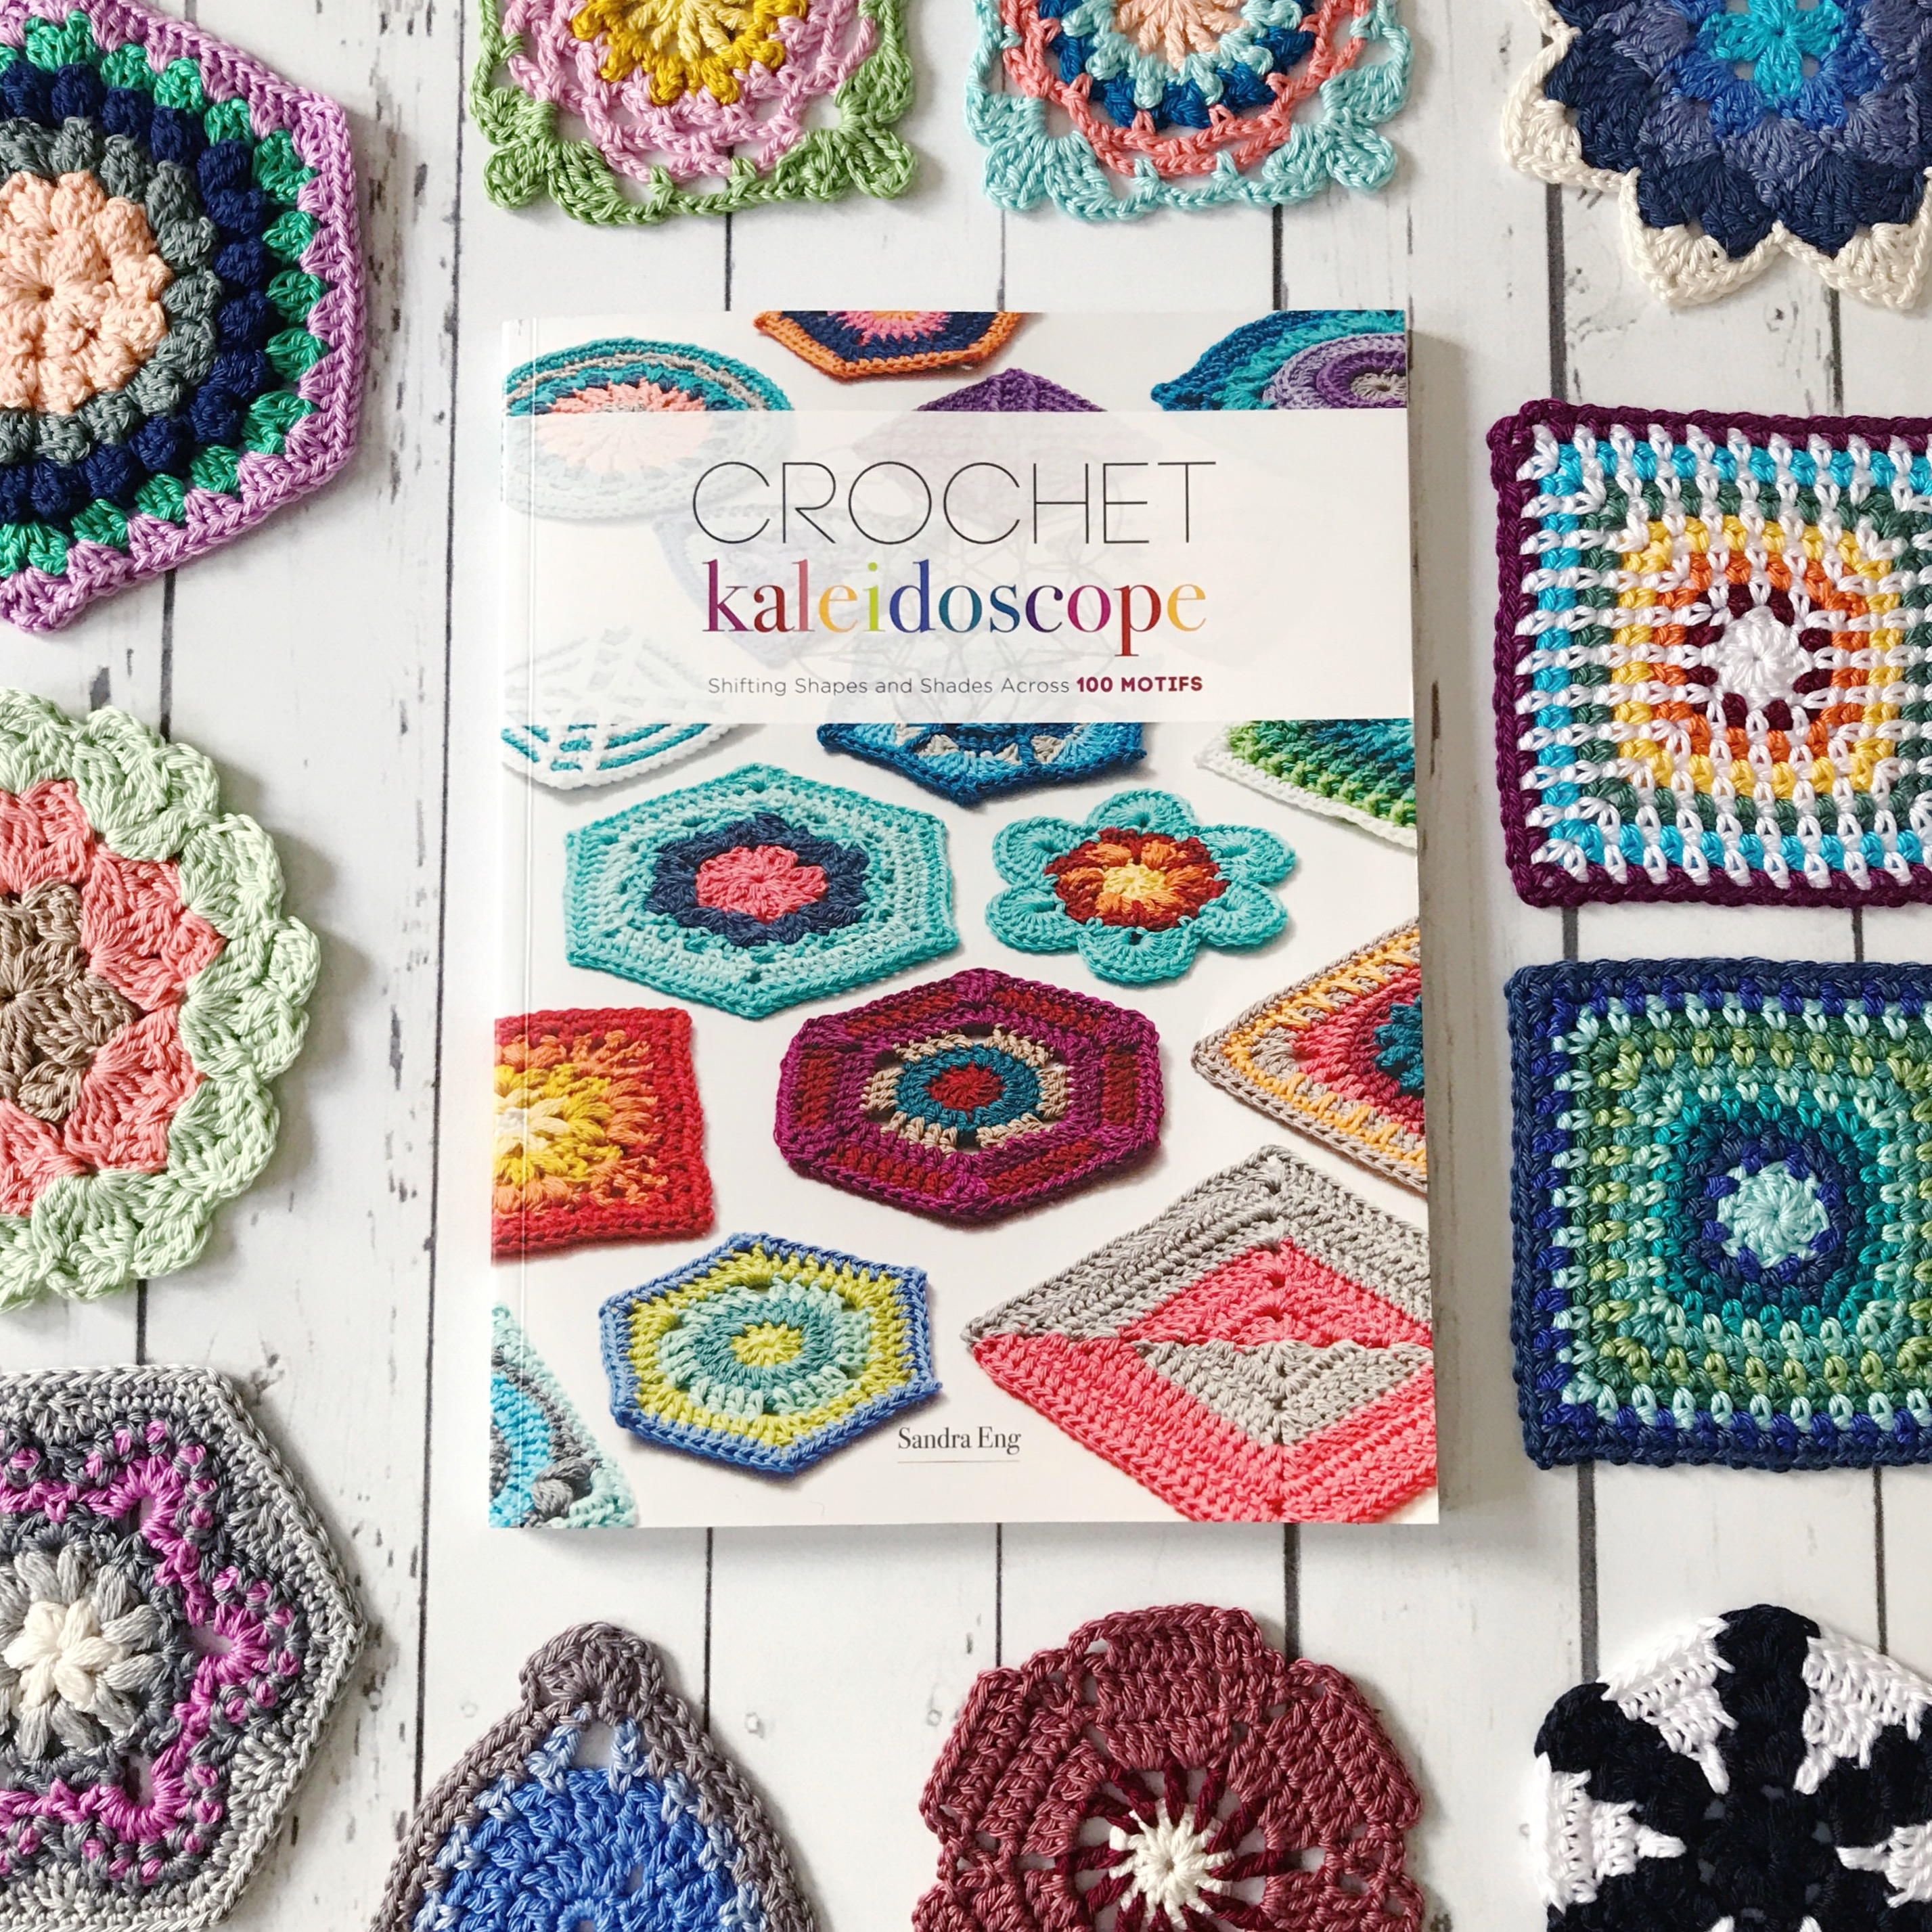 crochet kaleidoscope book